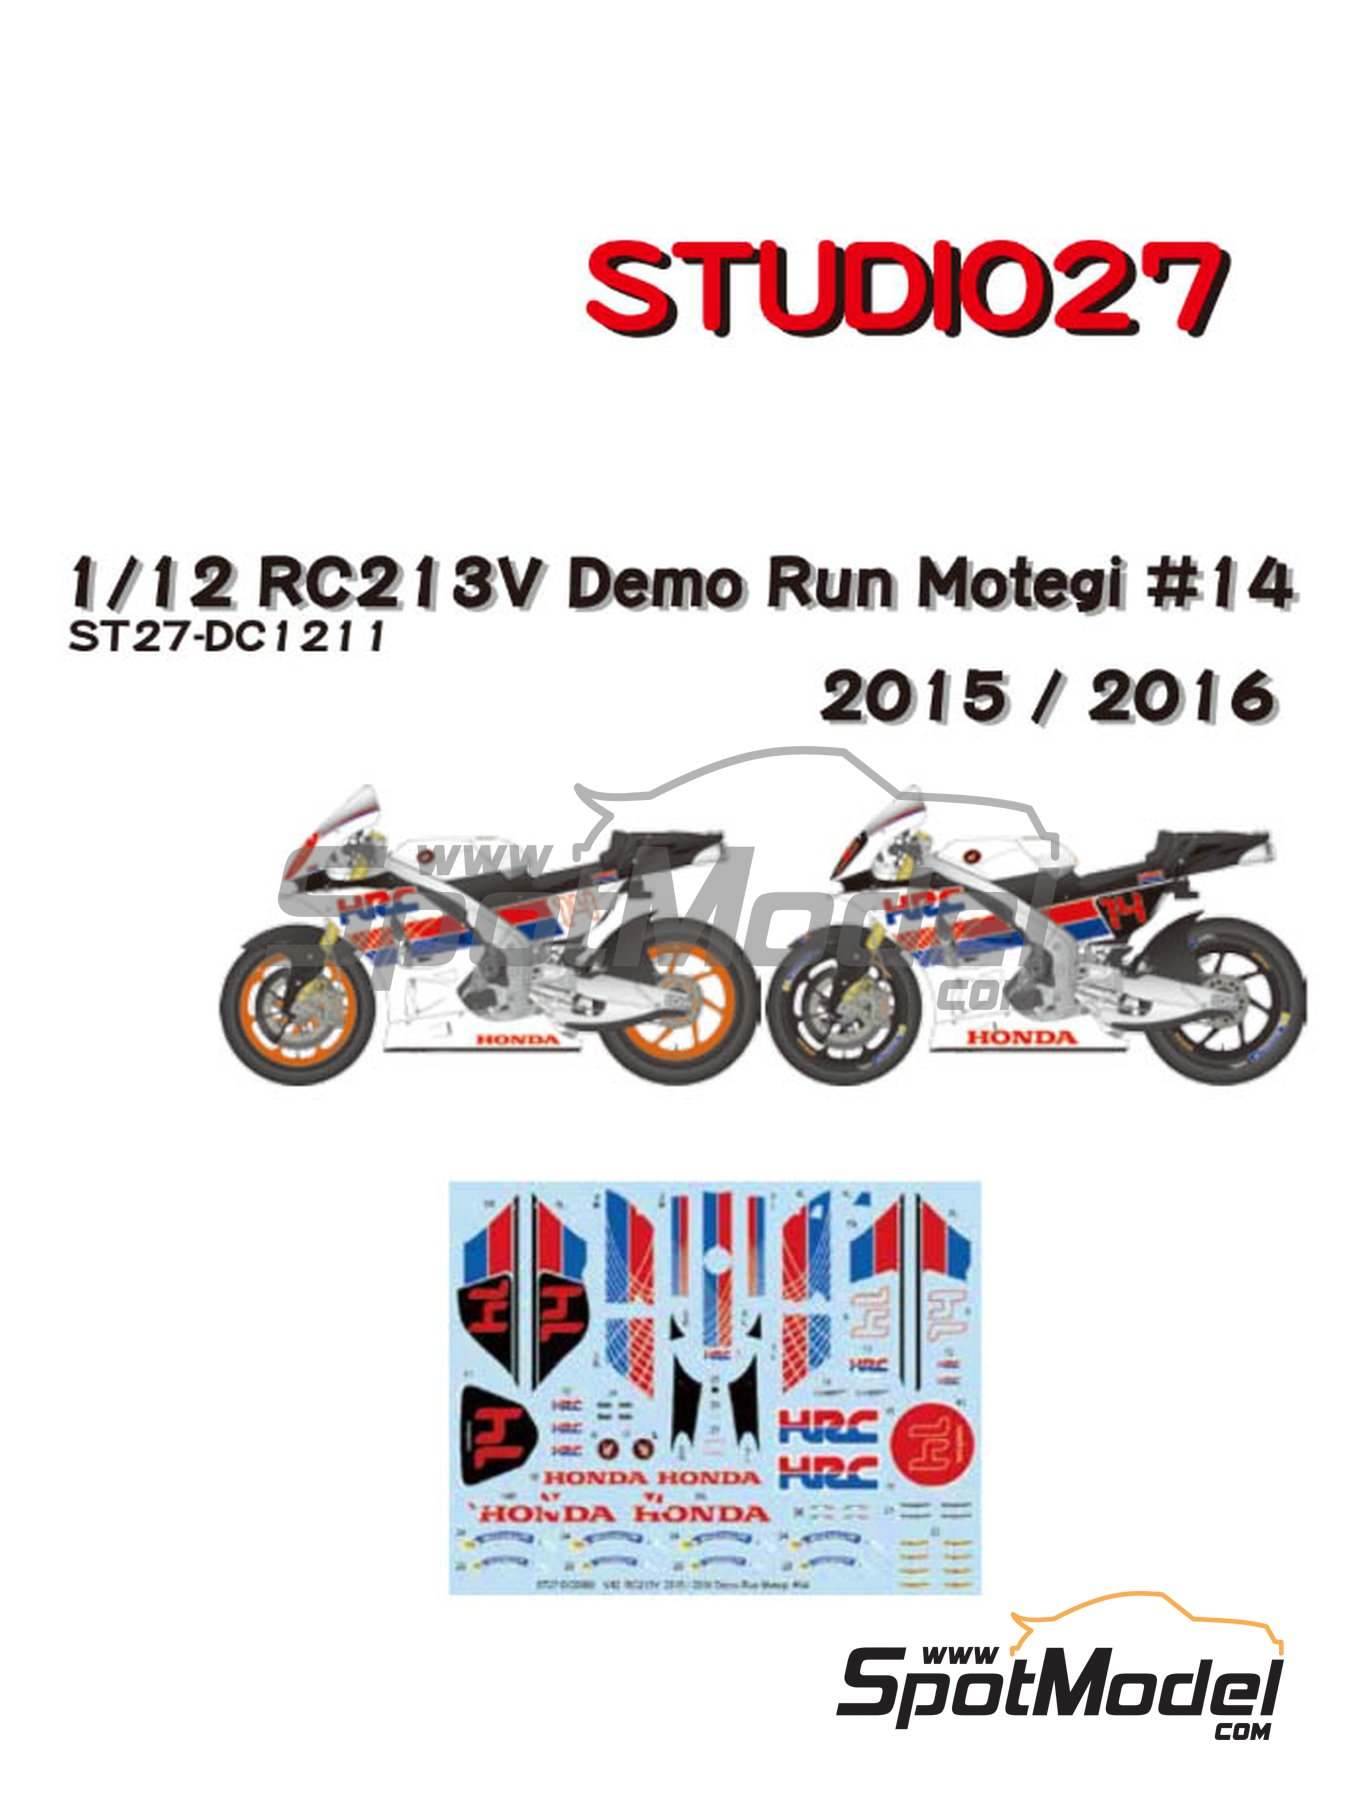 Honda RC213V HRC - Honda Racing Thanks Day Motegi 2015 y 2016 | Decoración en escala 1/12 fabricado por Studio27 (ref. ST27-DC1211) image